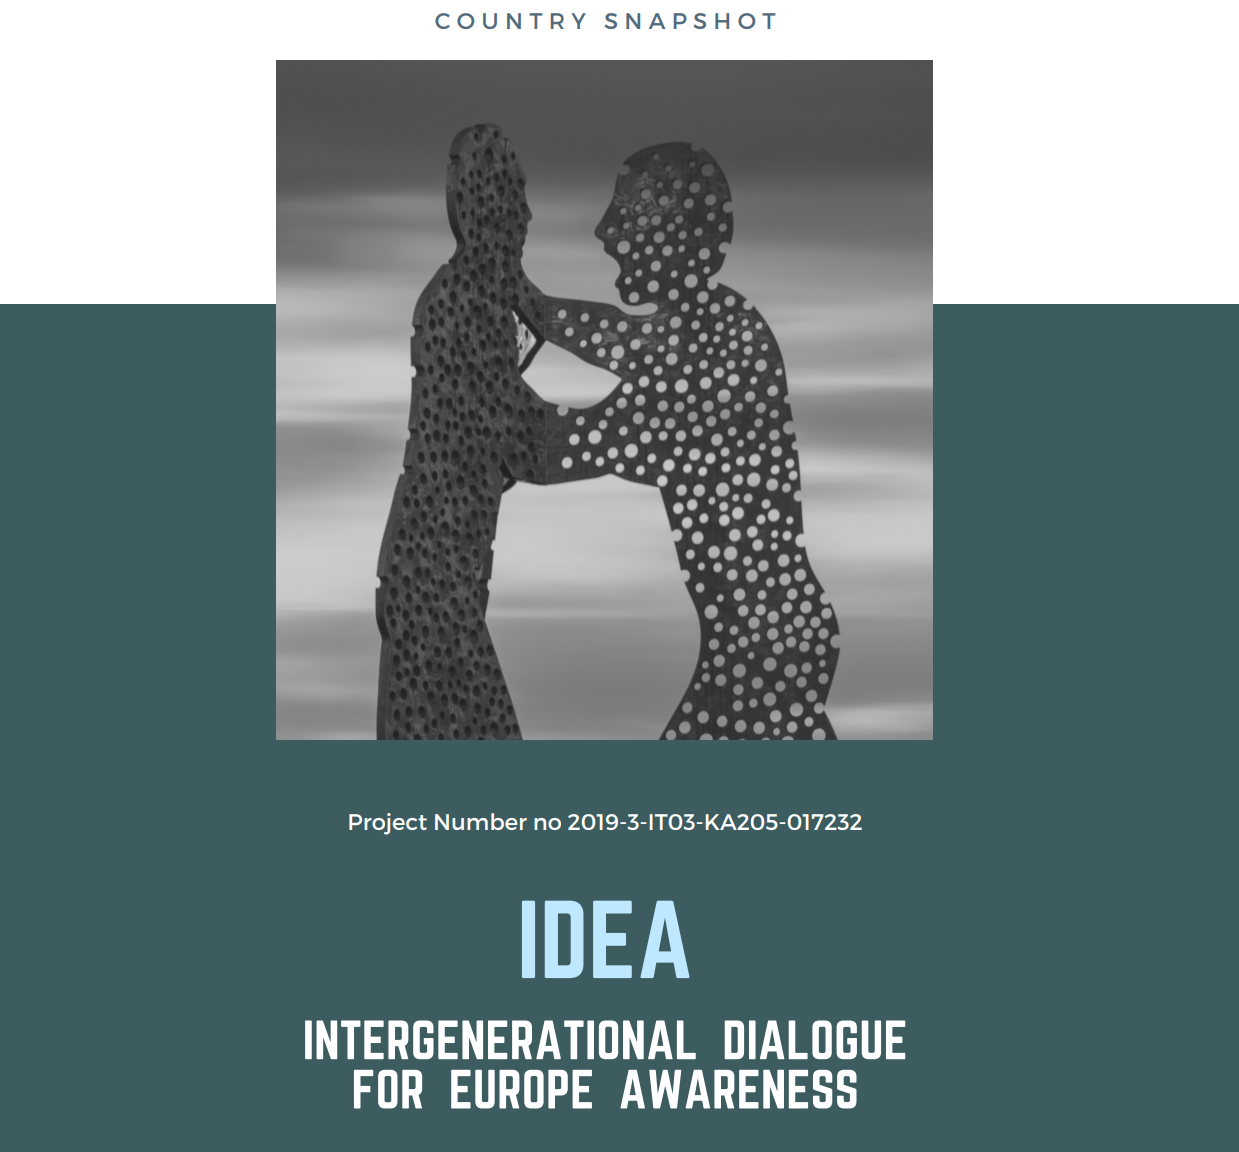 """IDEA: INTERGENERATIONAL DIALOGUE for EUROPEAN AWARENESS"""": a focus on intergenerational equity and social sustainability"""